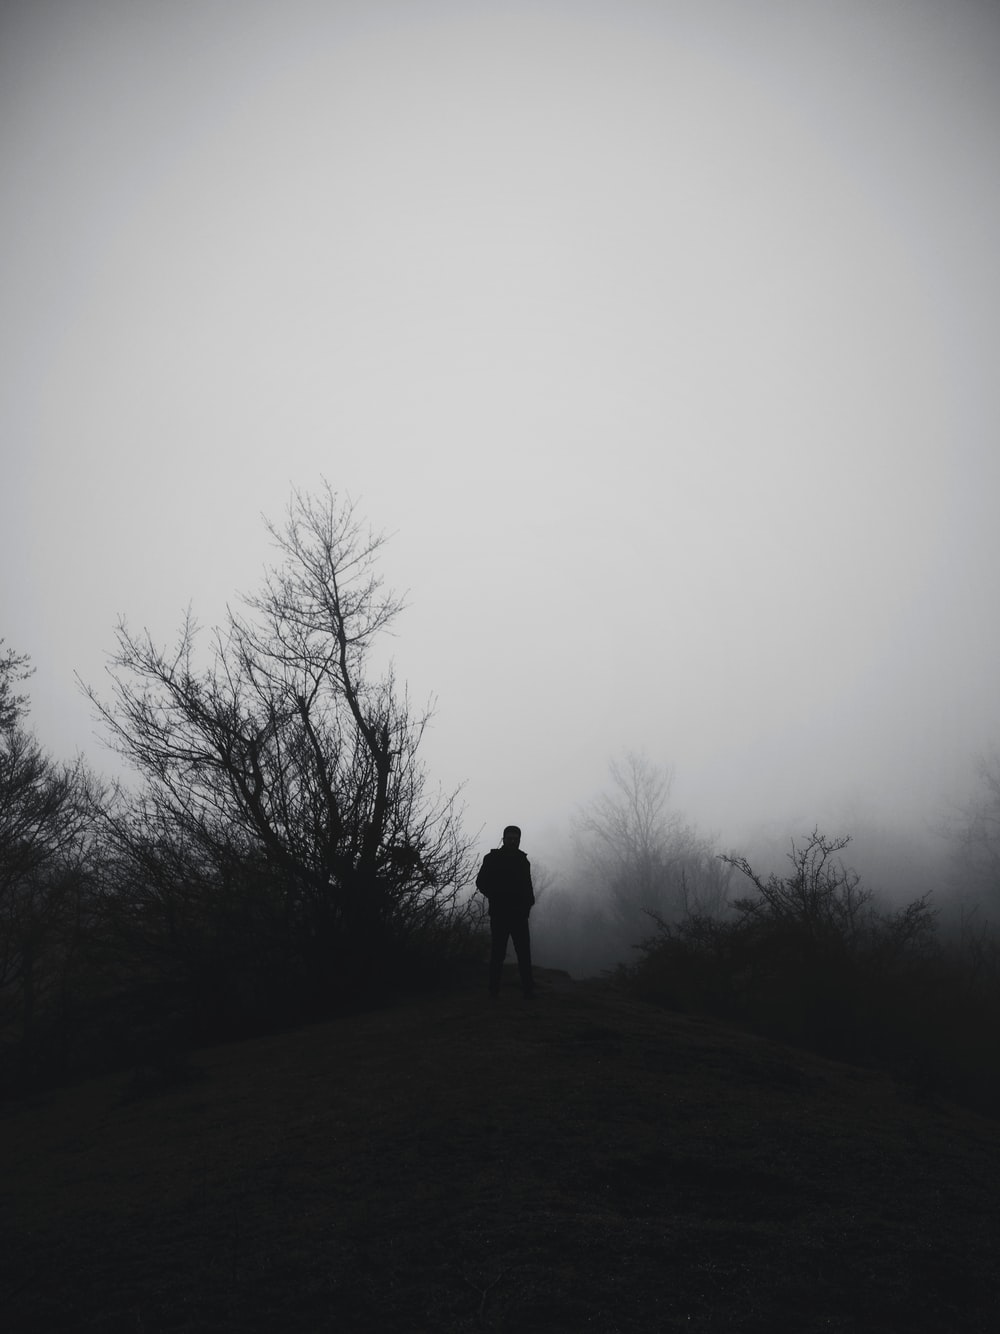 silhouette of person standing on foggy field